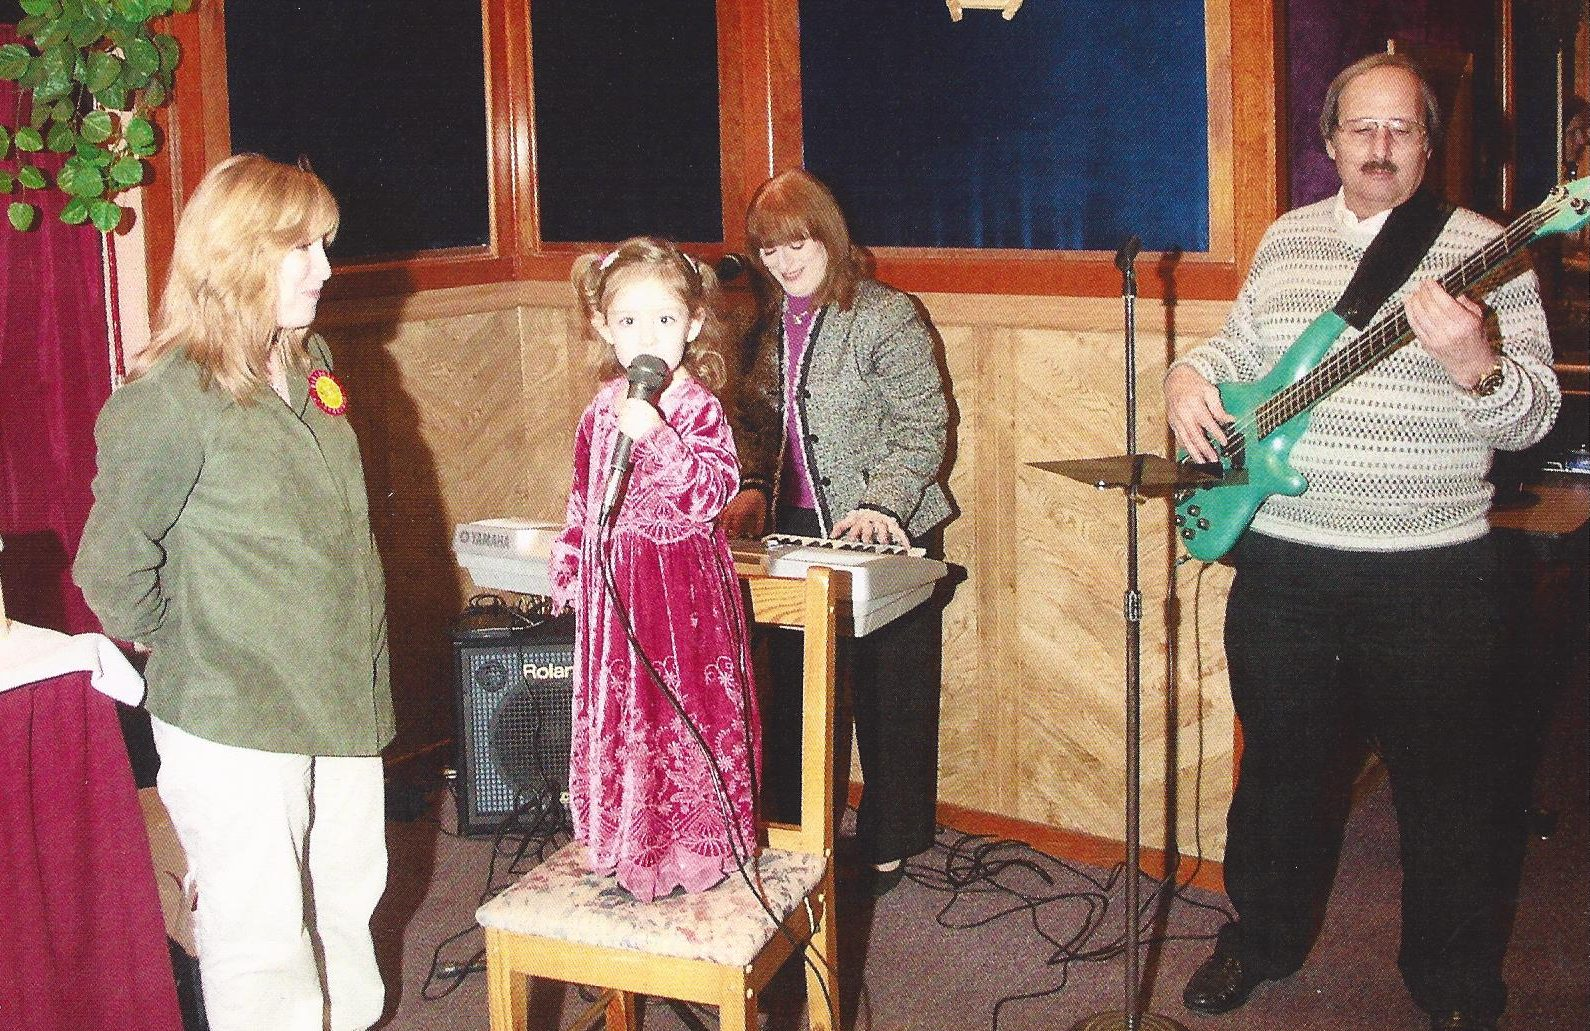 Alexa as a baby singing at her brother's baby naming. Her mother Sheri is to the left, her grandma Sandy is behind her playing the piano, and her Grandpa Shelley is to the right of her playing the guitar.